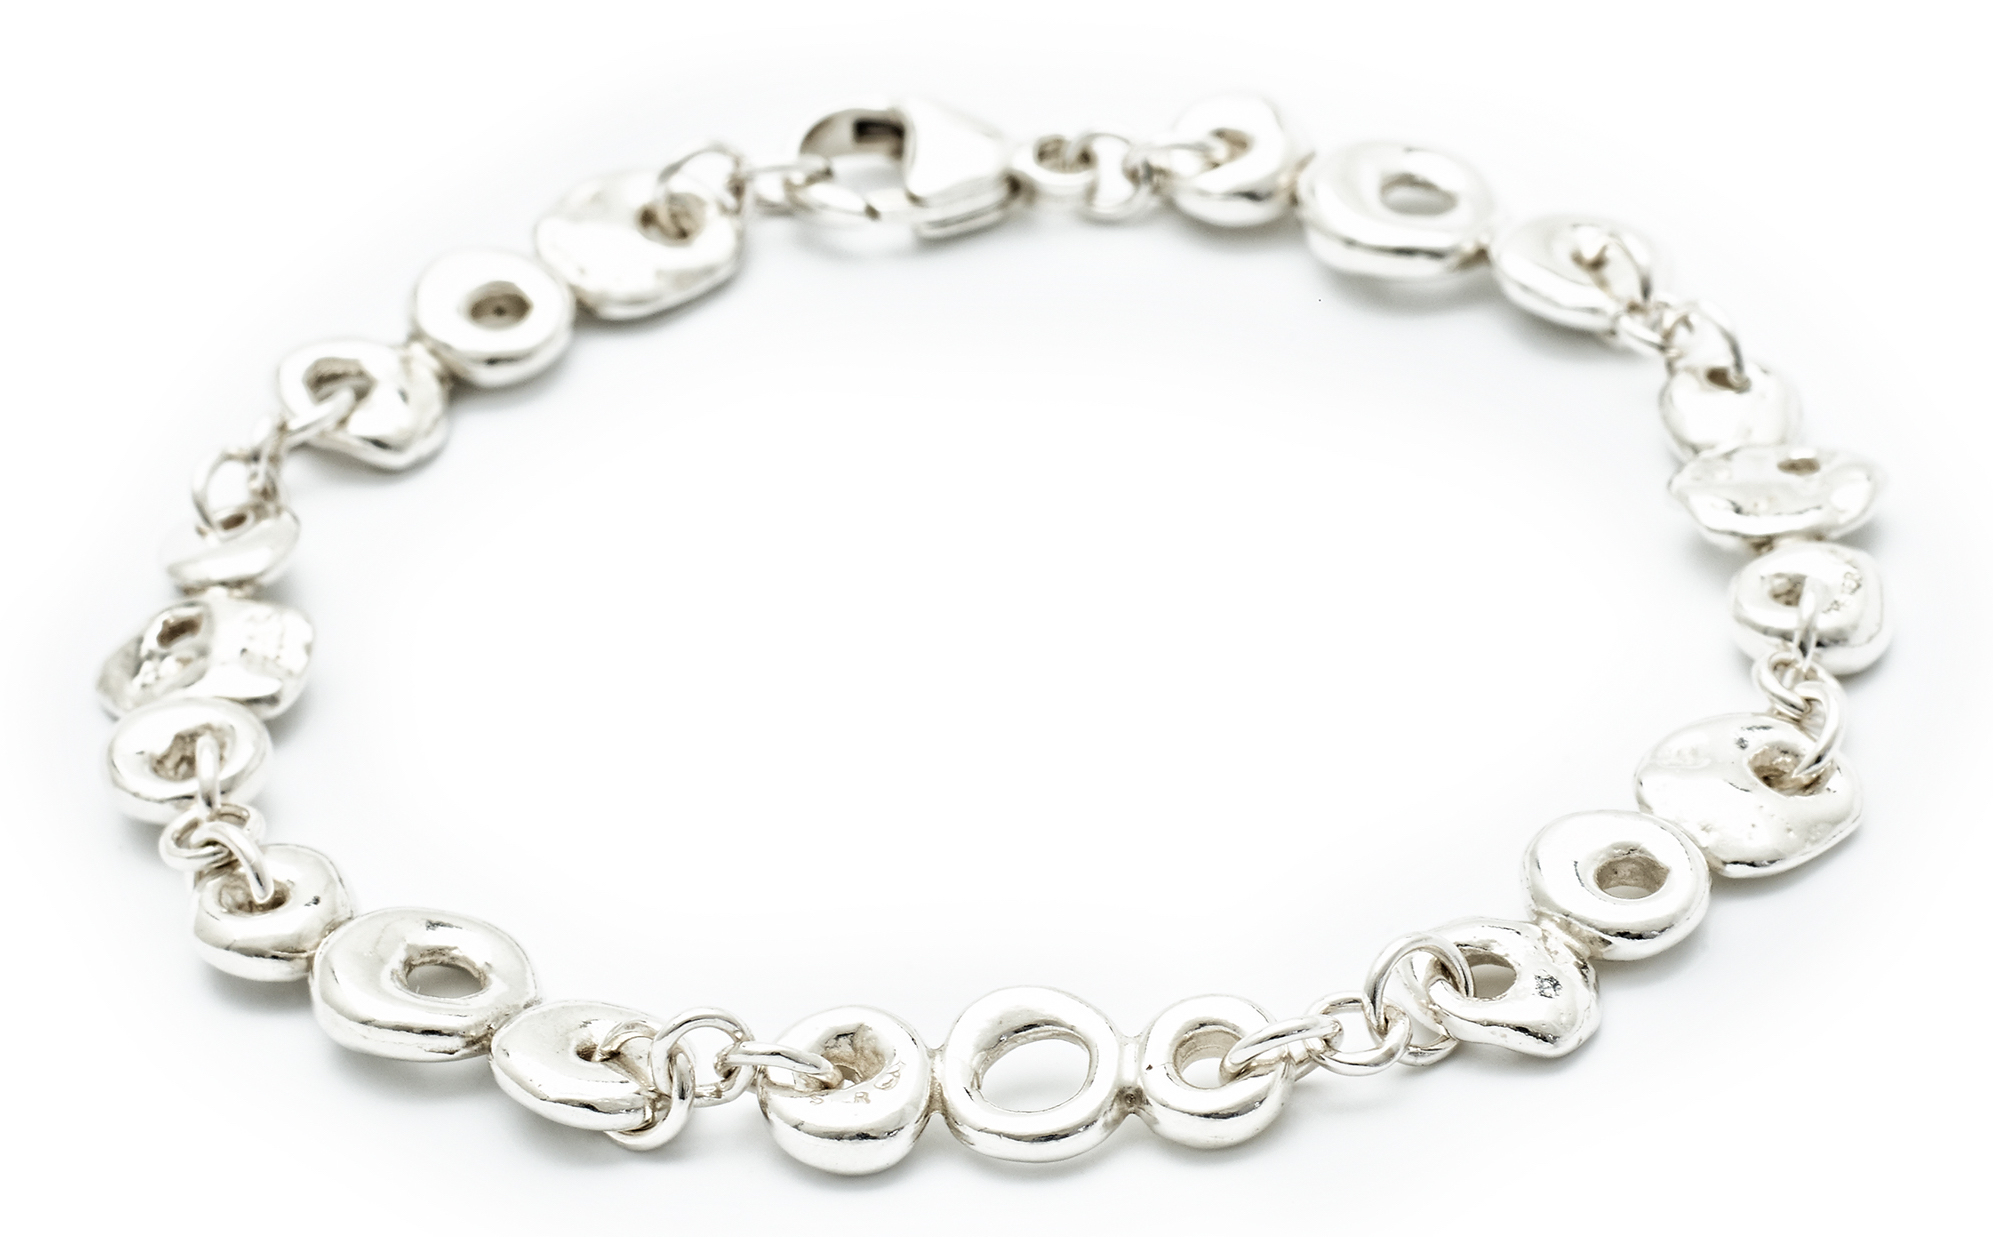 Johanna Brierley Beach Stone bracelet | JCK On Your Market